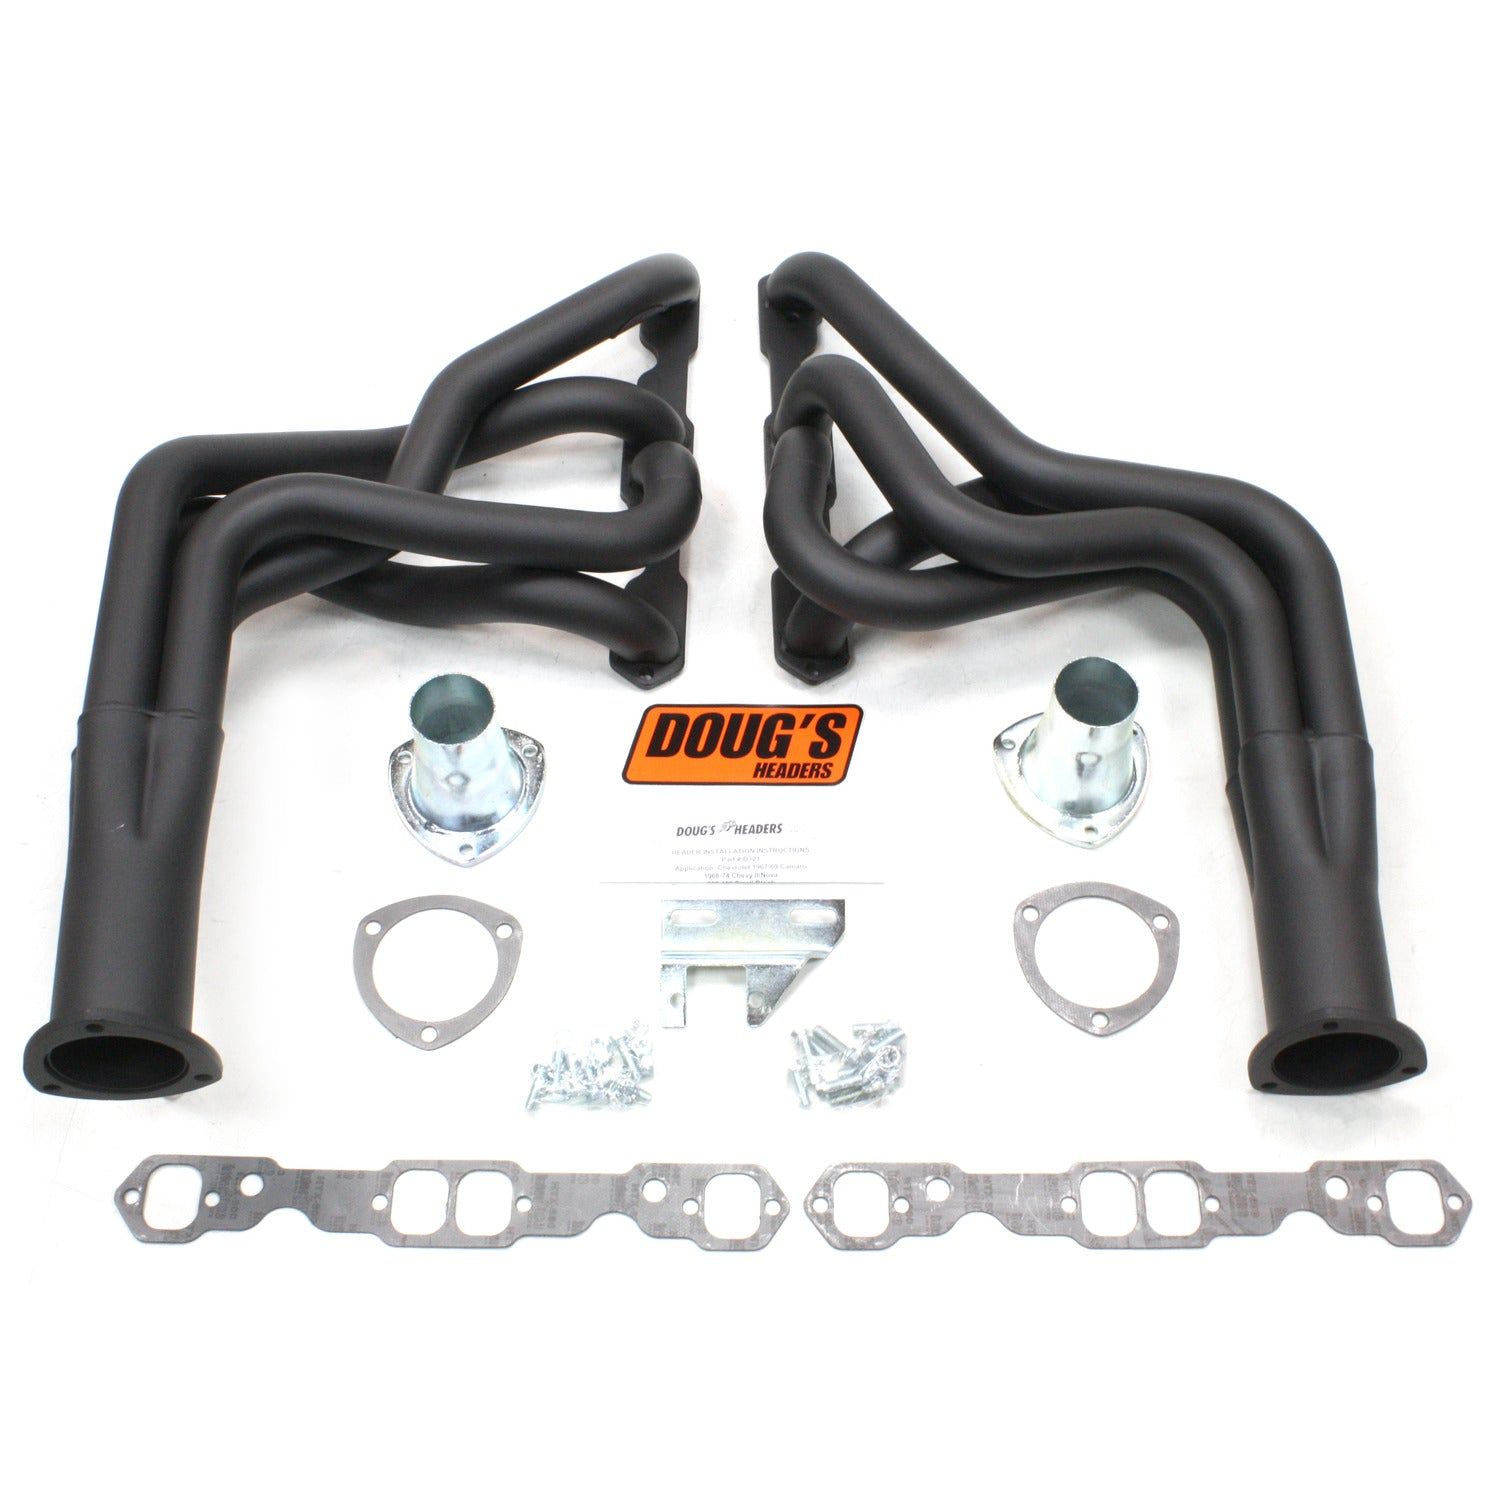 "Doug's Headers D323-B 1 7/8"" 4-Tube Full Length Header Camaro Small Block Chevrolet 67-69 Hi-Temp Black Coating"